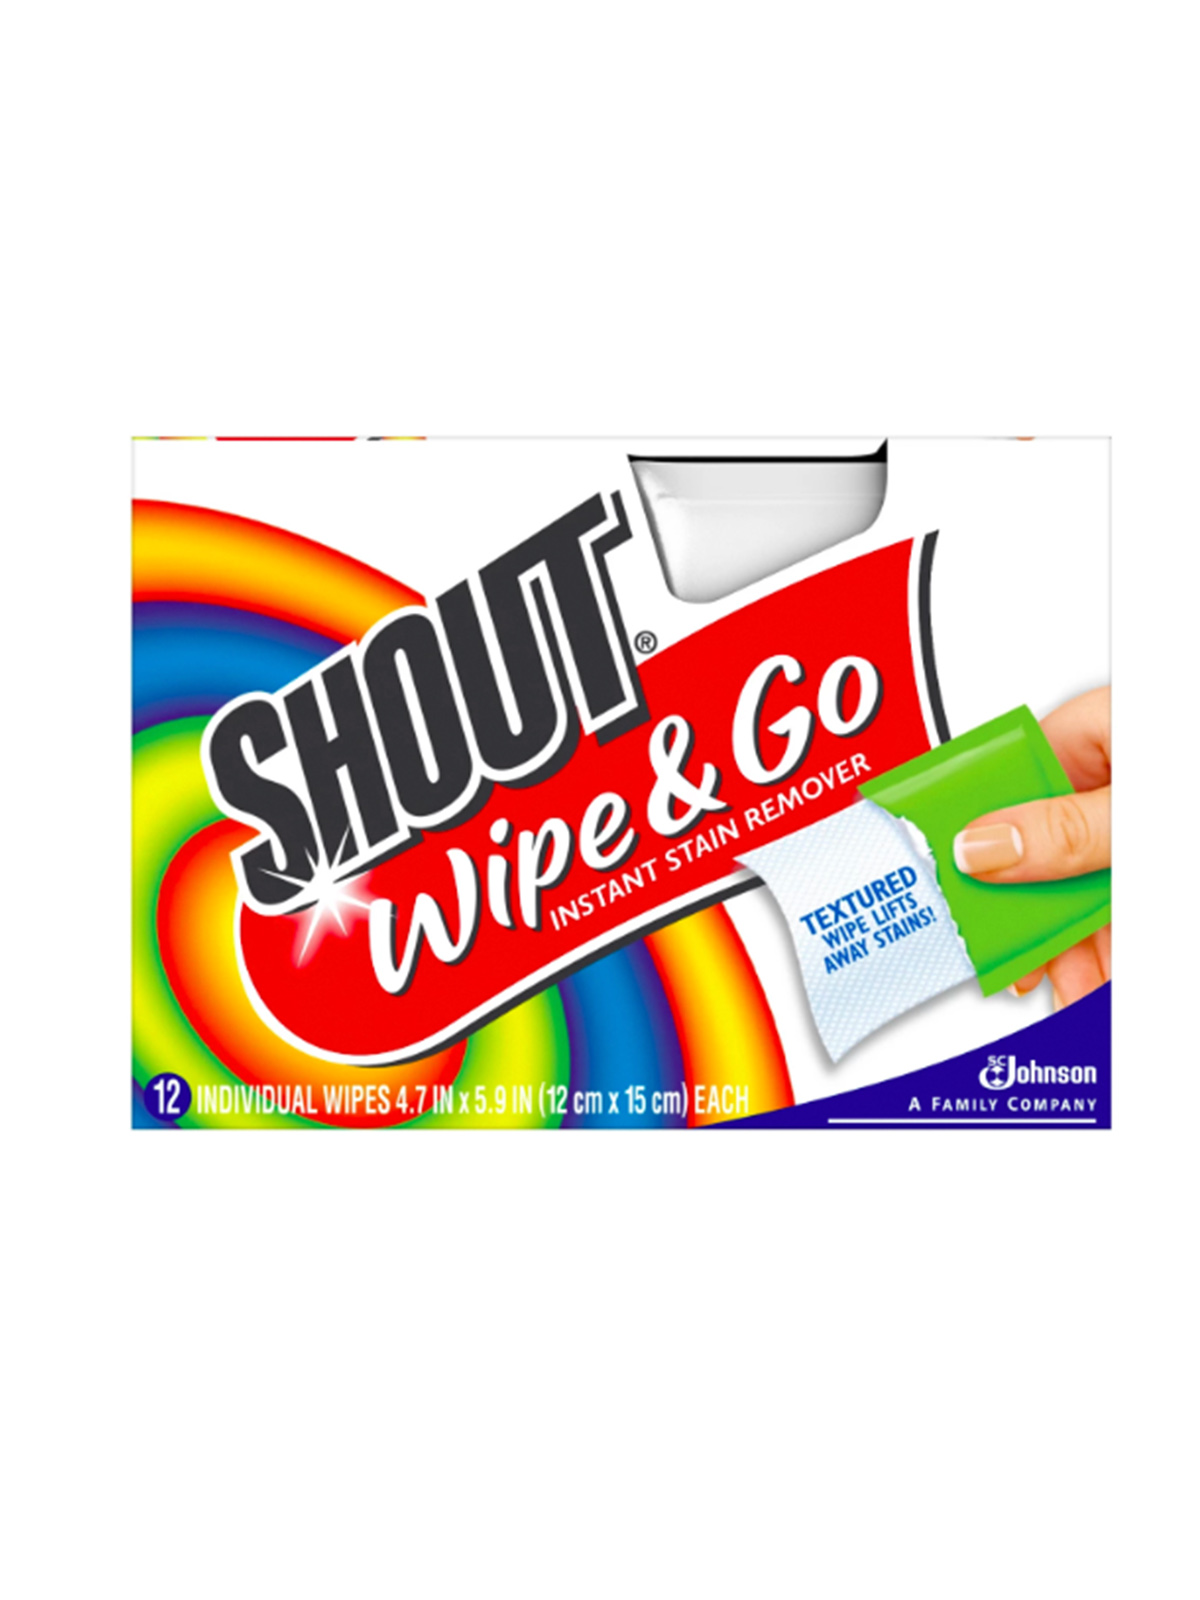 Best Mini Travel Stain Removers, Shout & Go Wipes